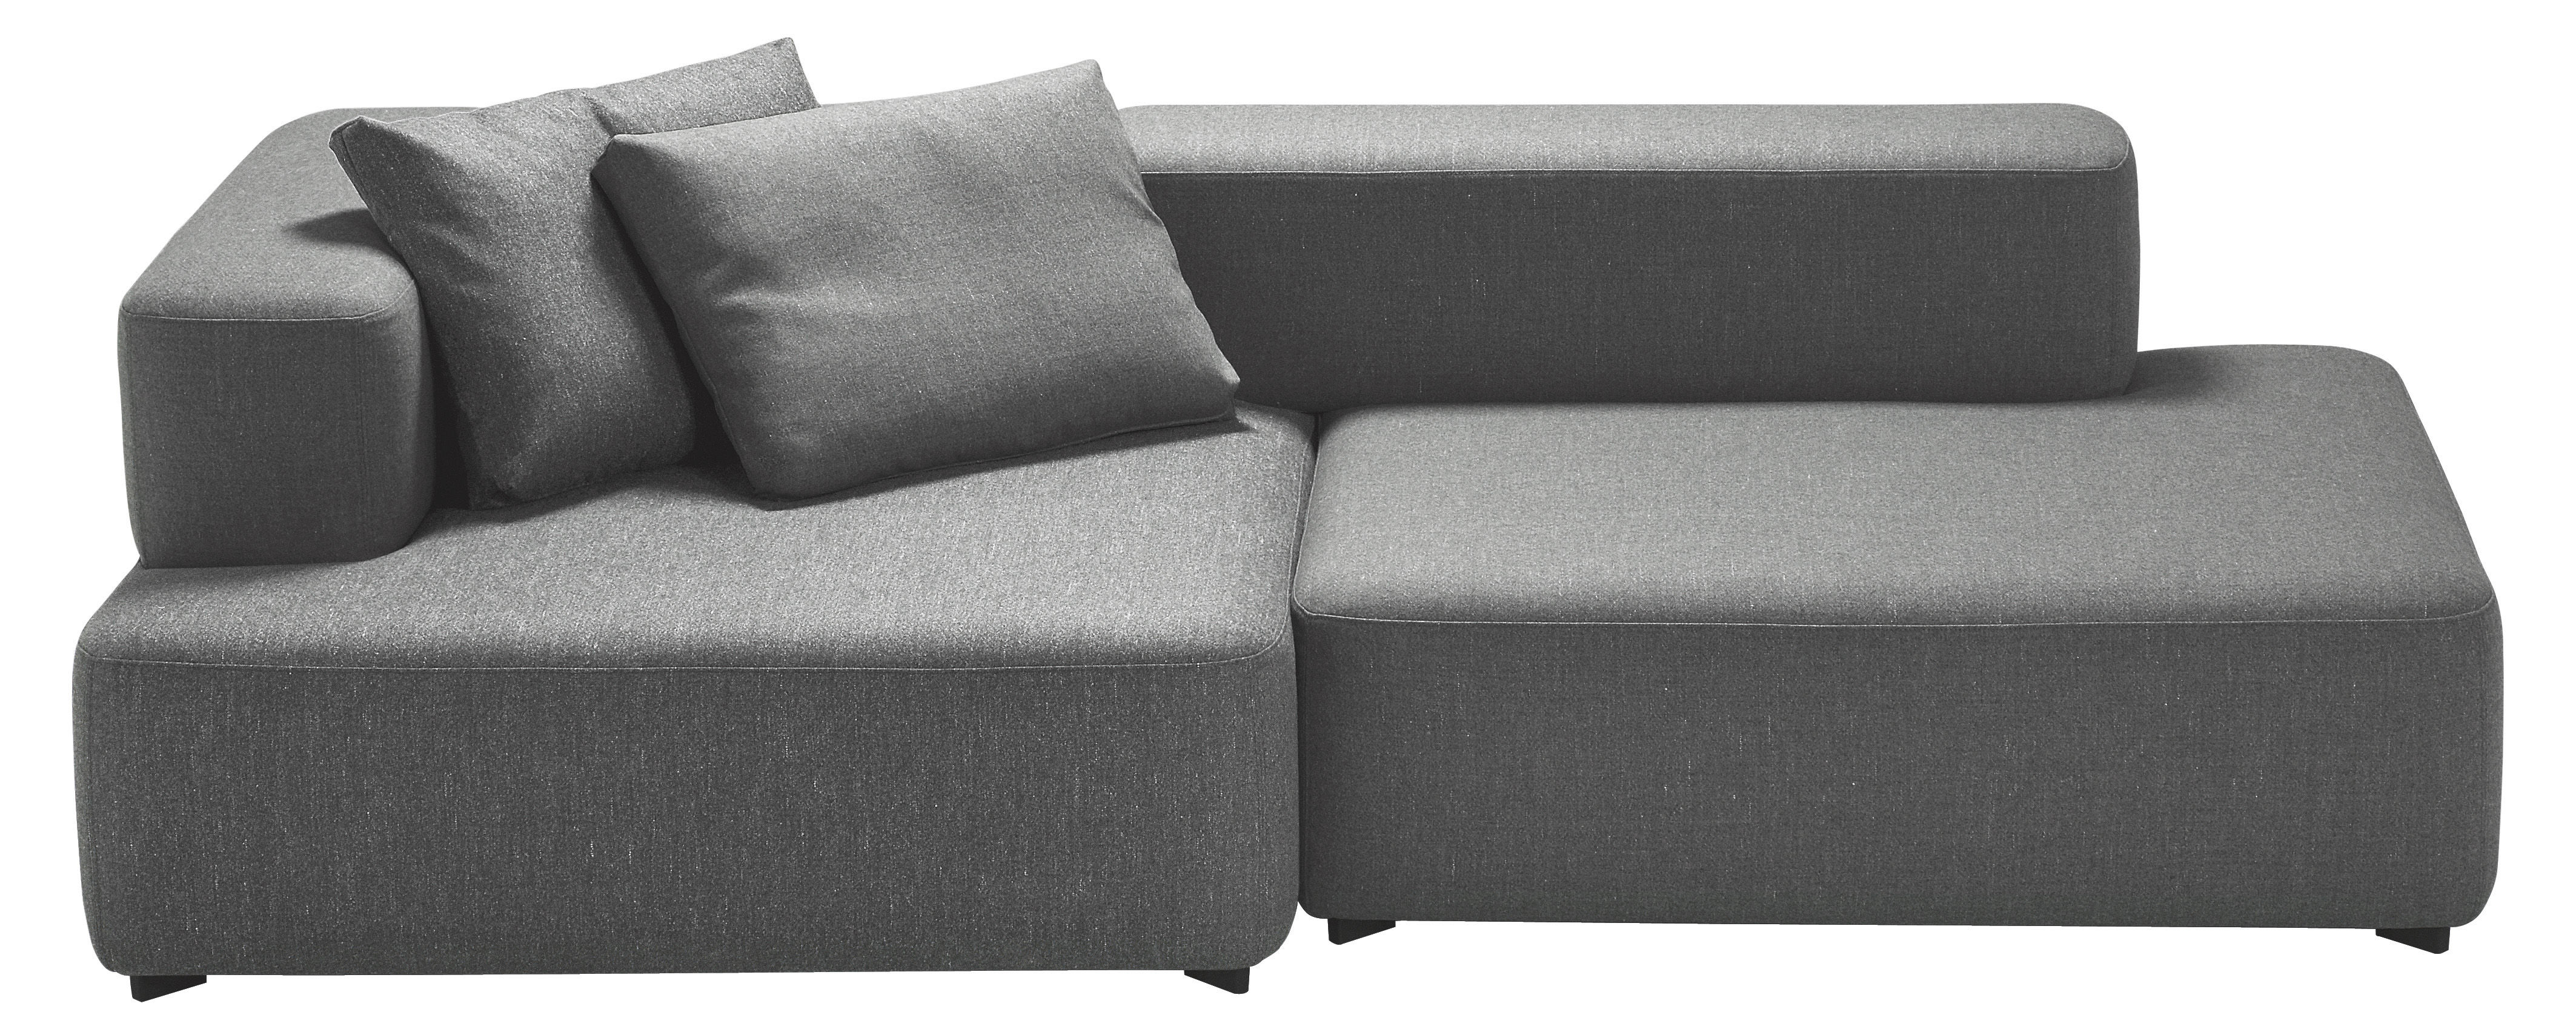 Alphabet sofa modular 2 seats l 210 x d 120 cm dark for Sofa 75 cm tief